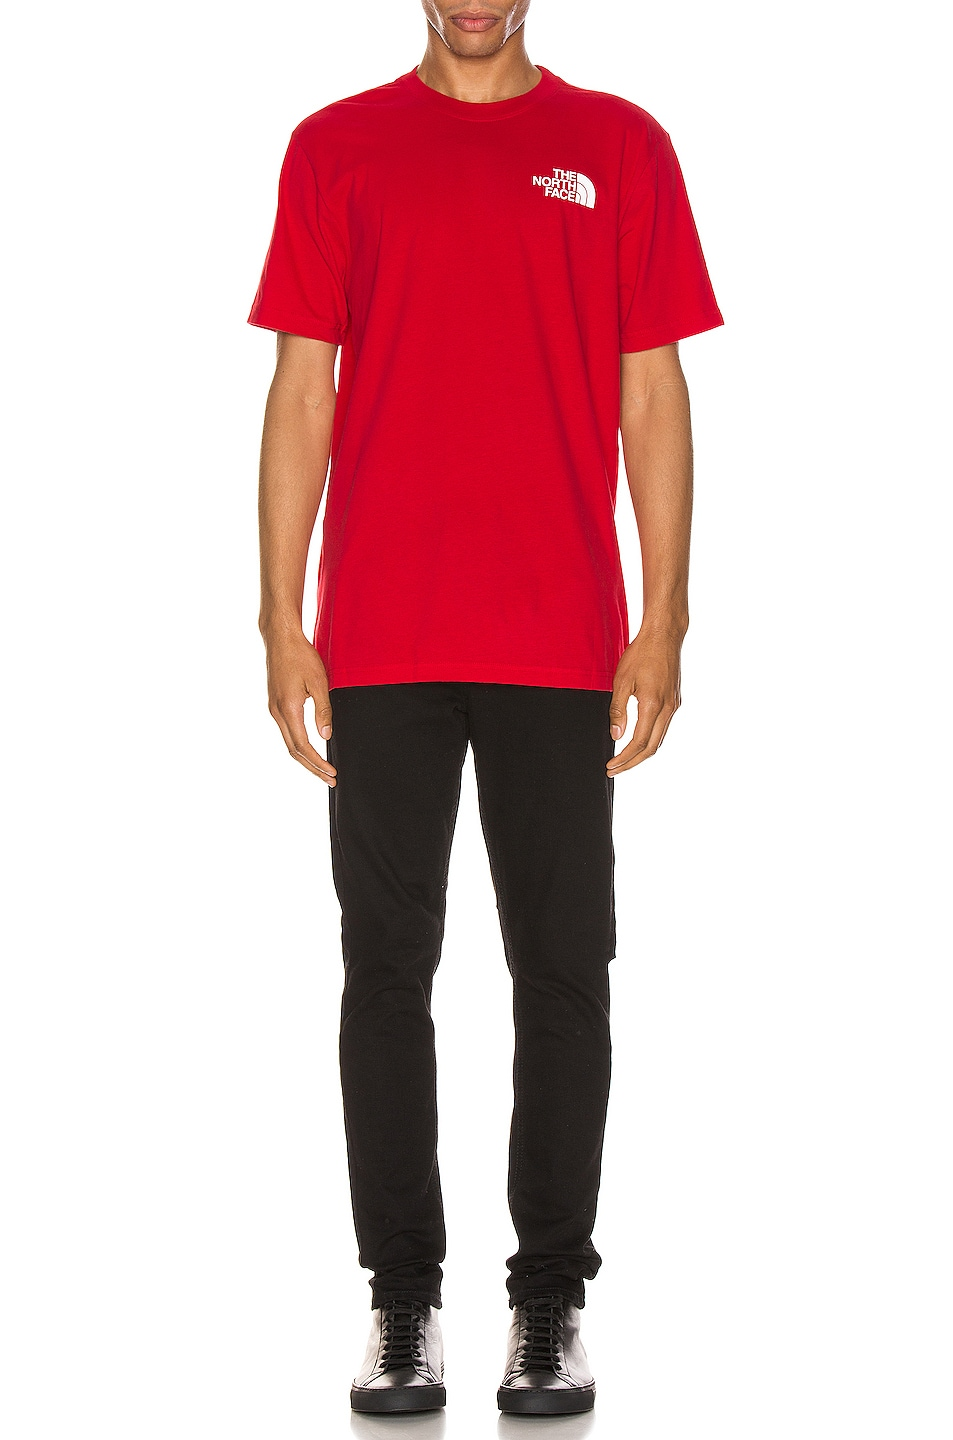 Image 5 of The North Face Red Box Tee in TNF Red